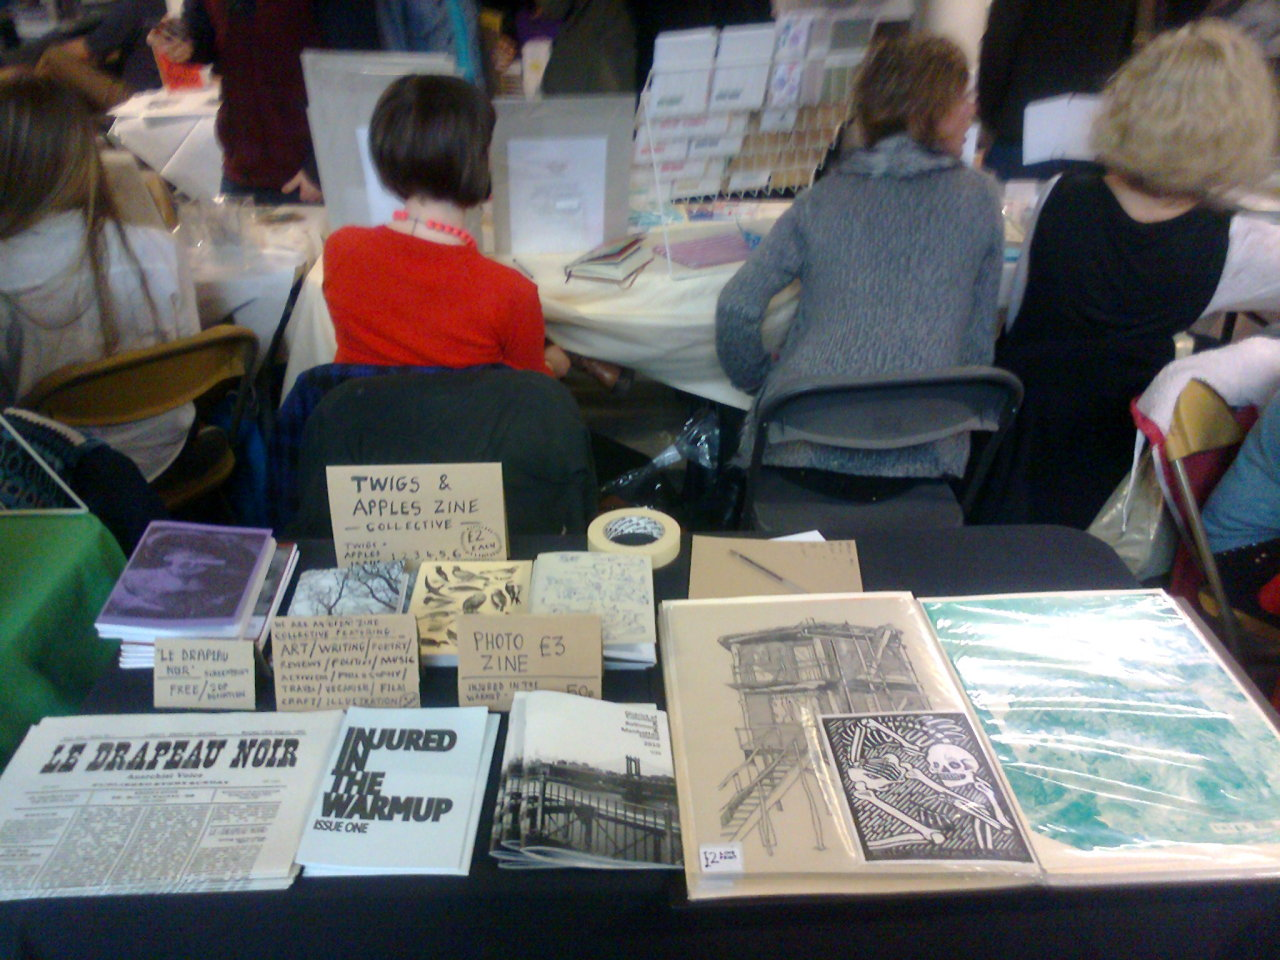 We had a stall at the Manchester Print Fair. Was a good day!